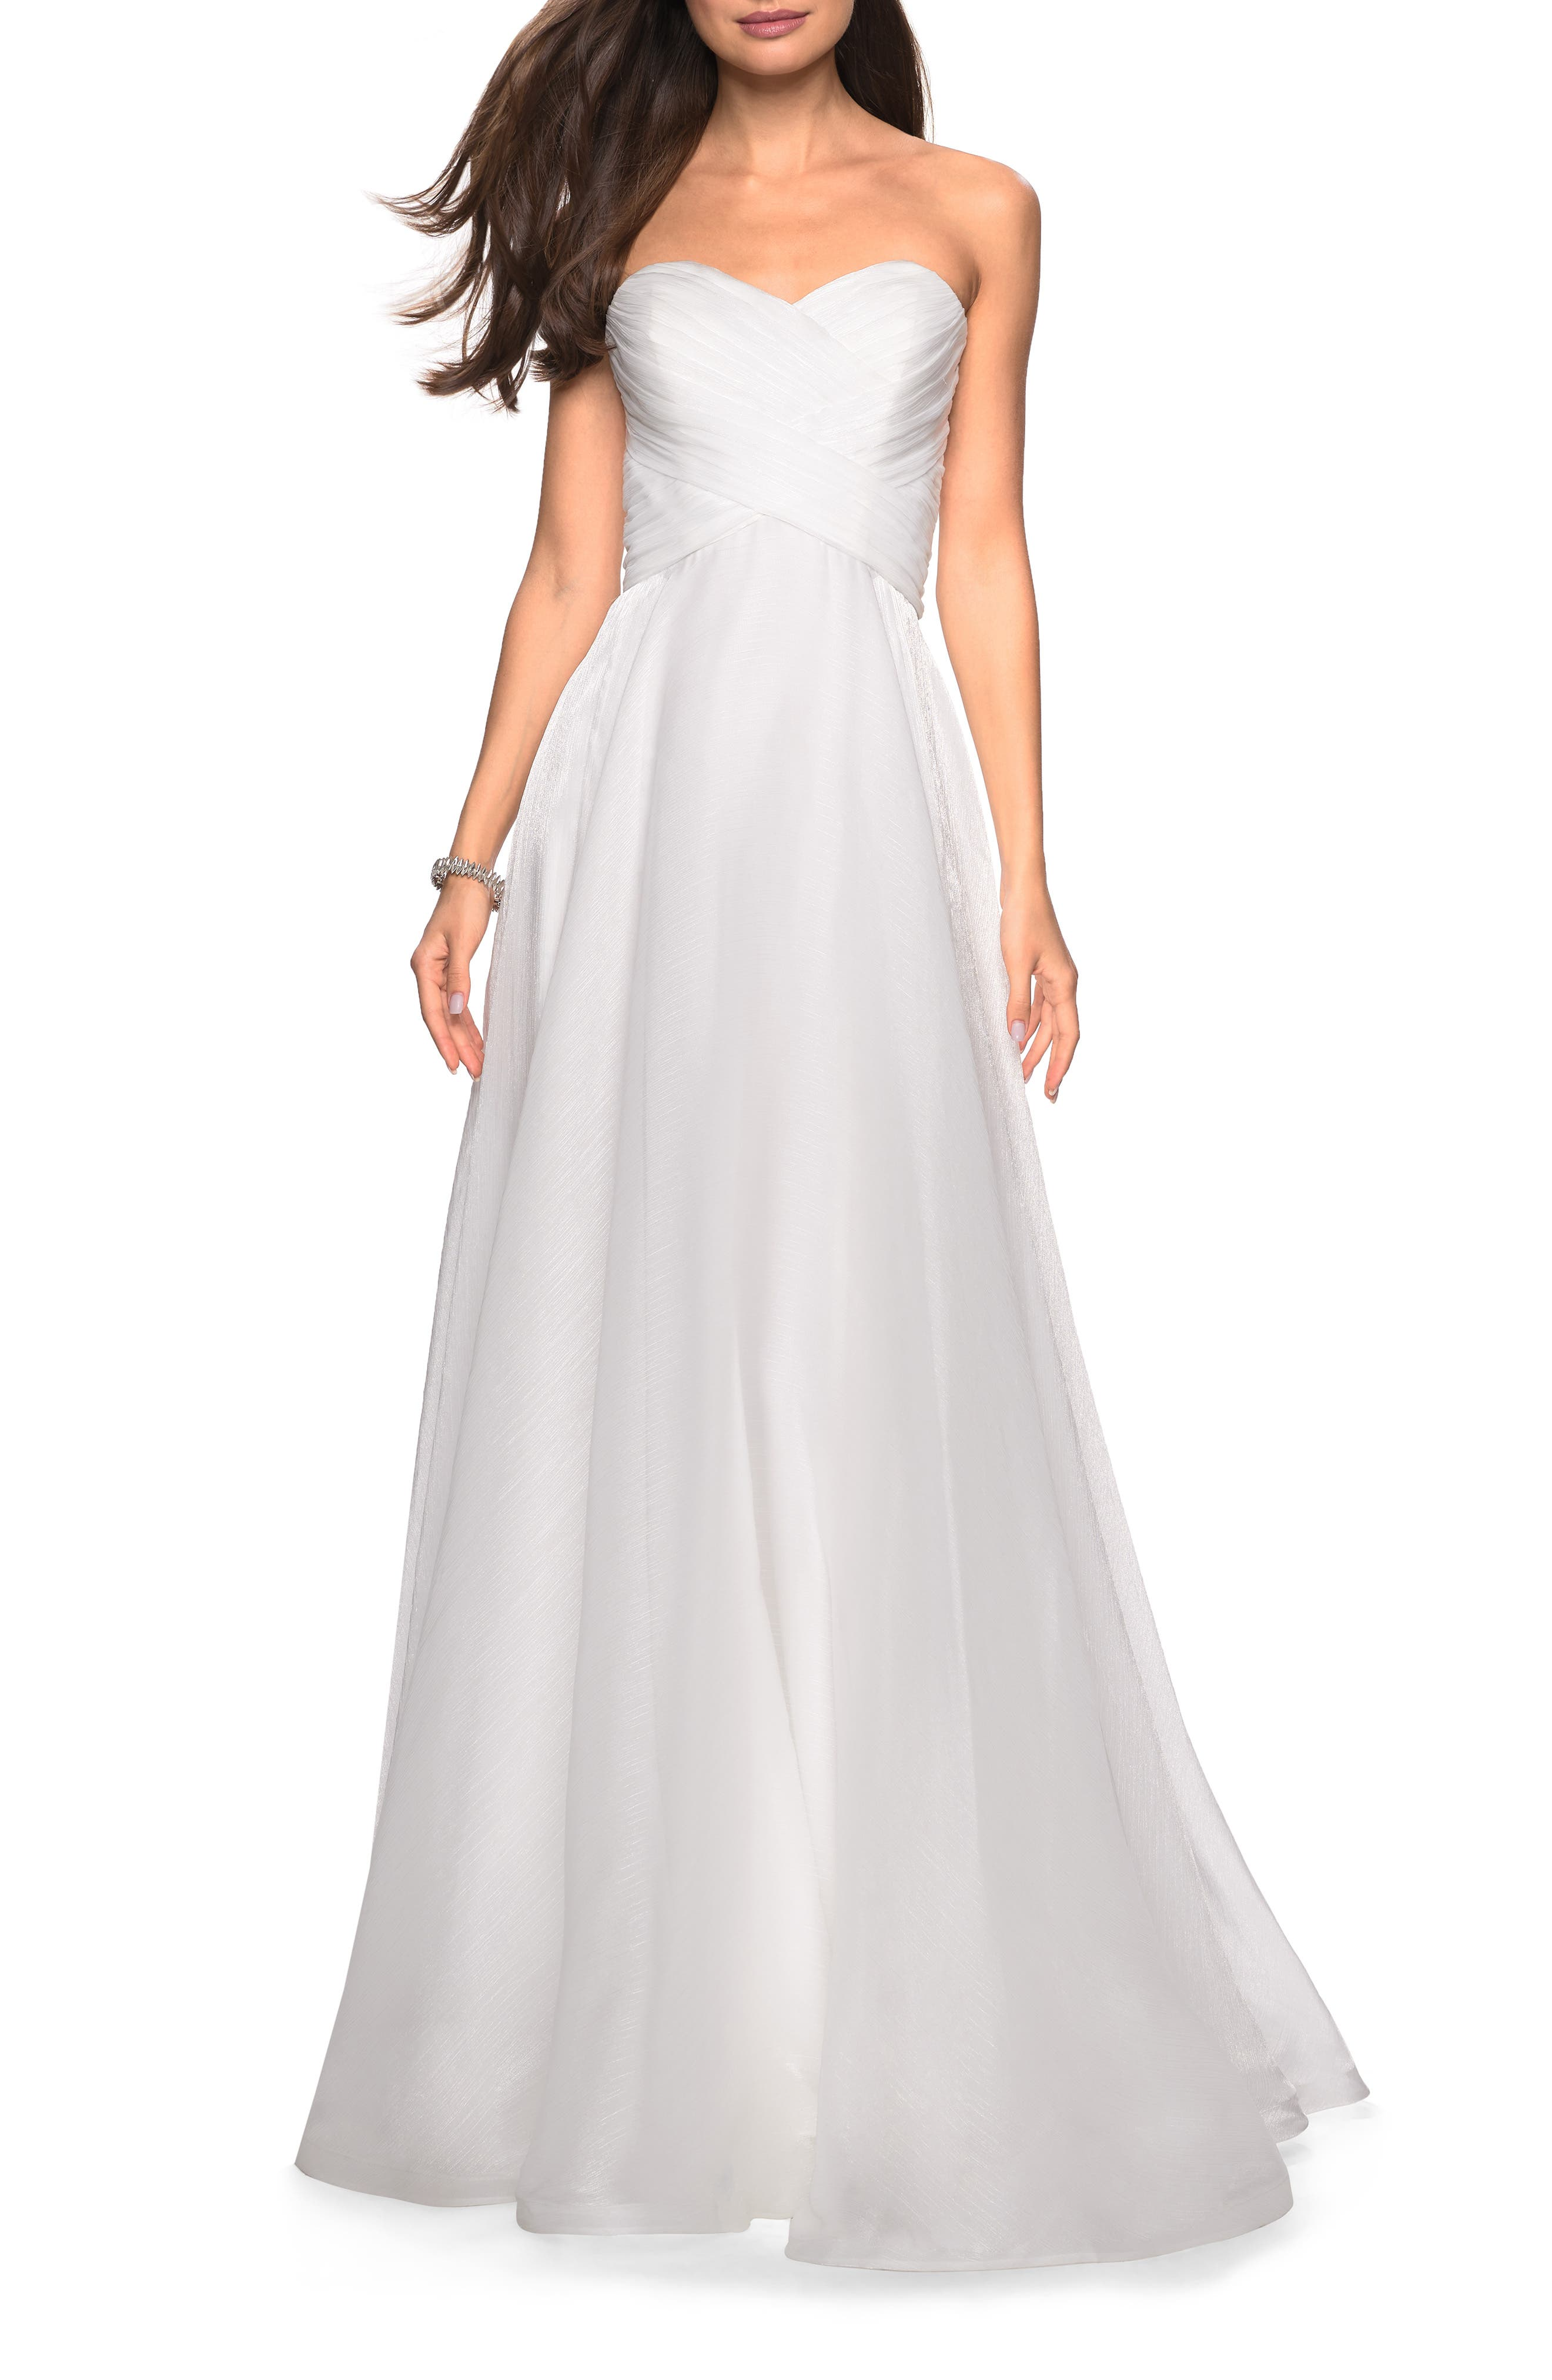 La Femme Strapless Metallic Chiffon Evening Dress, White